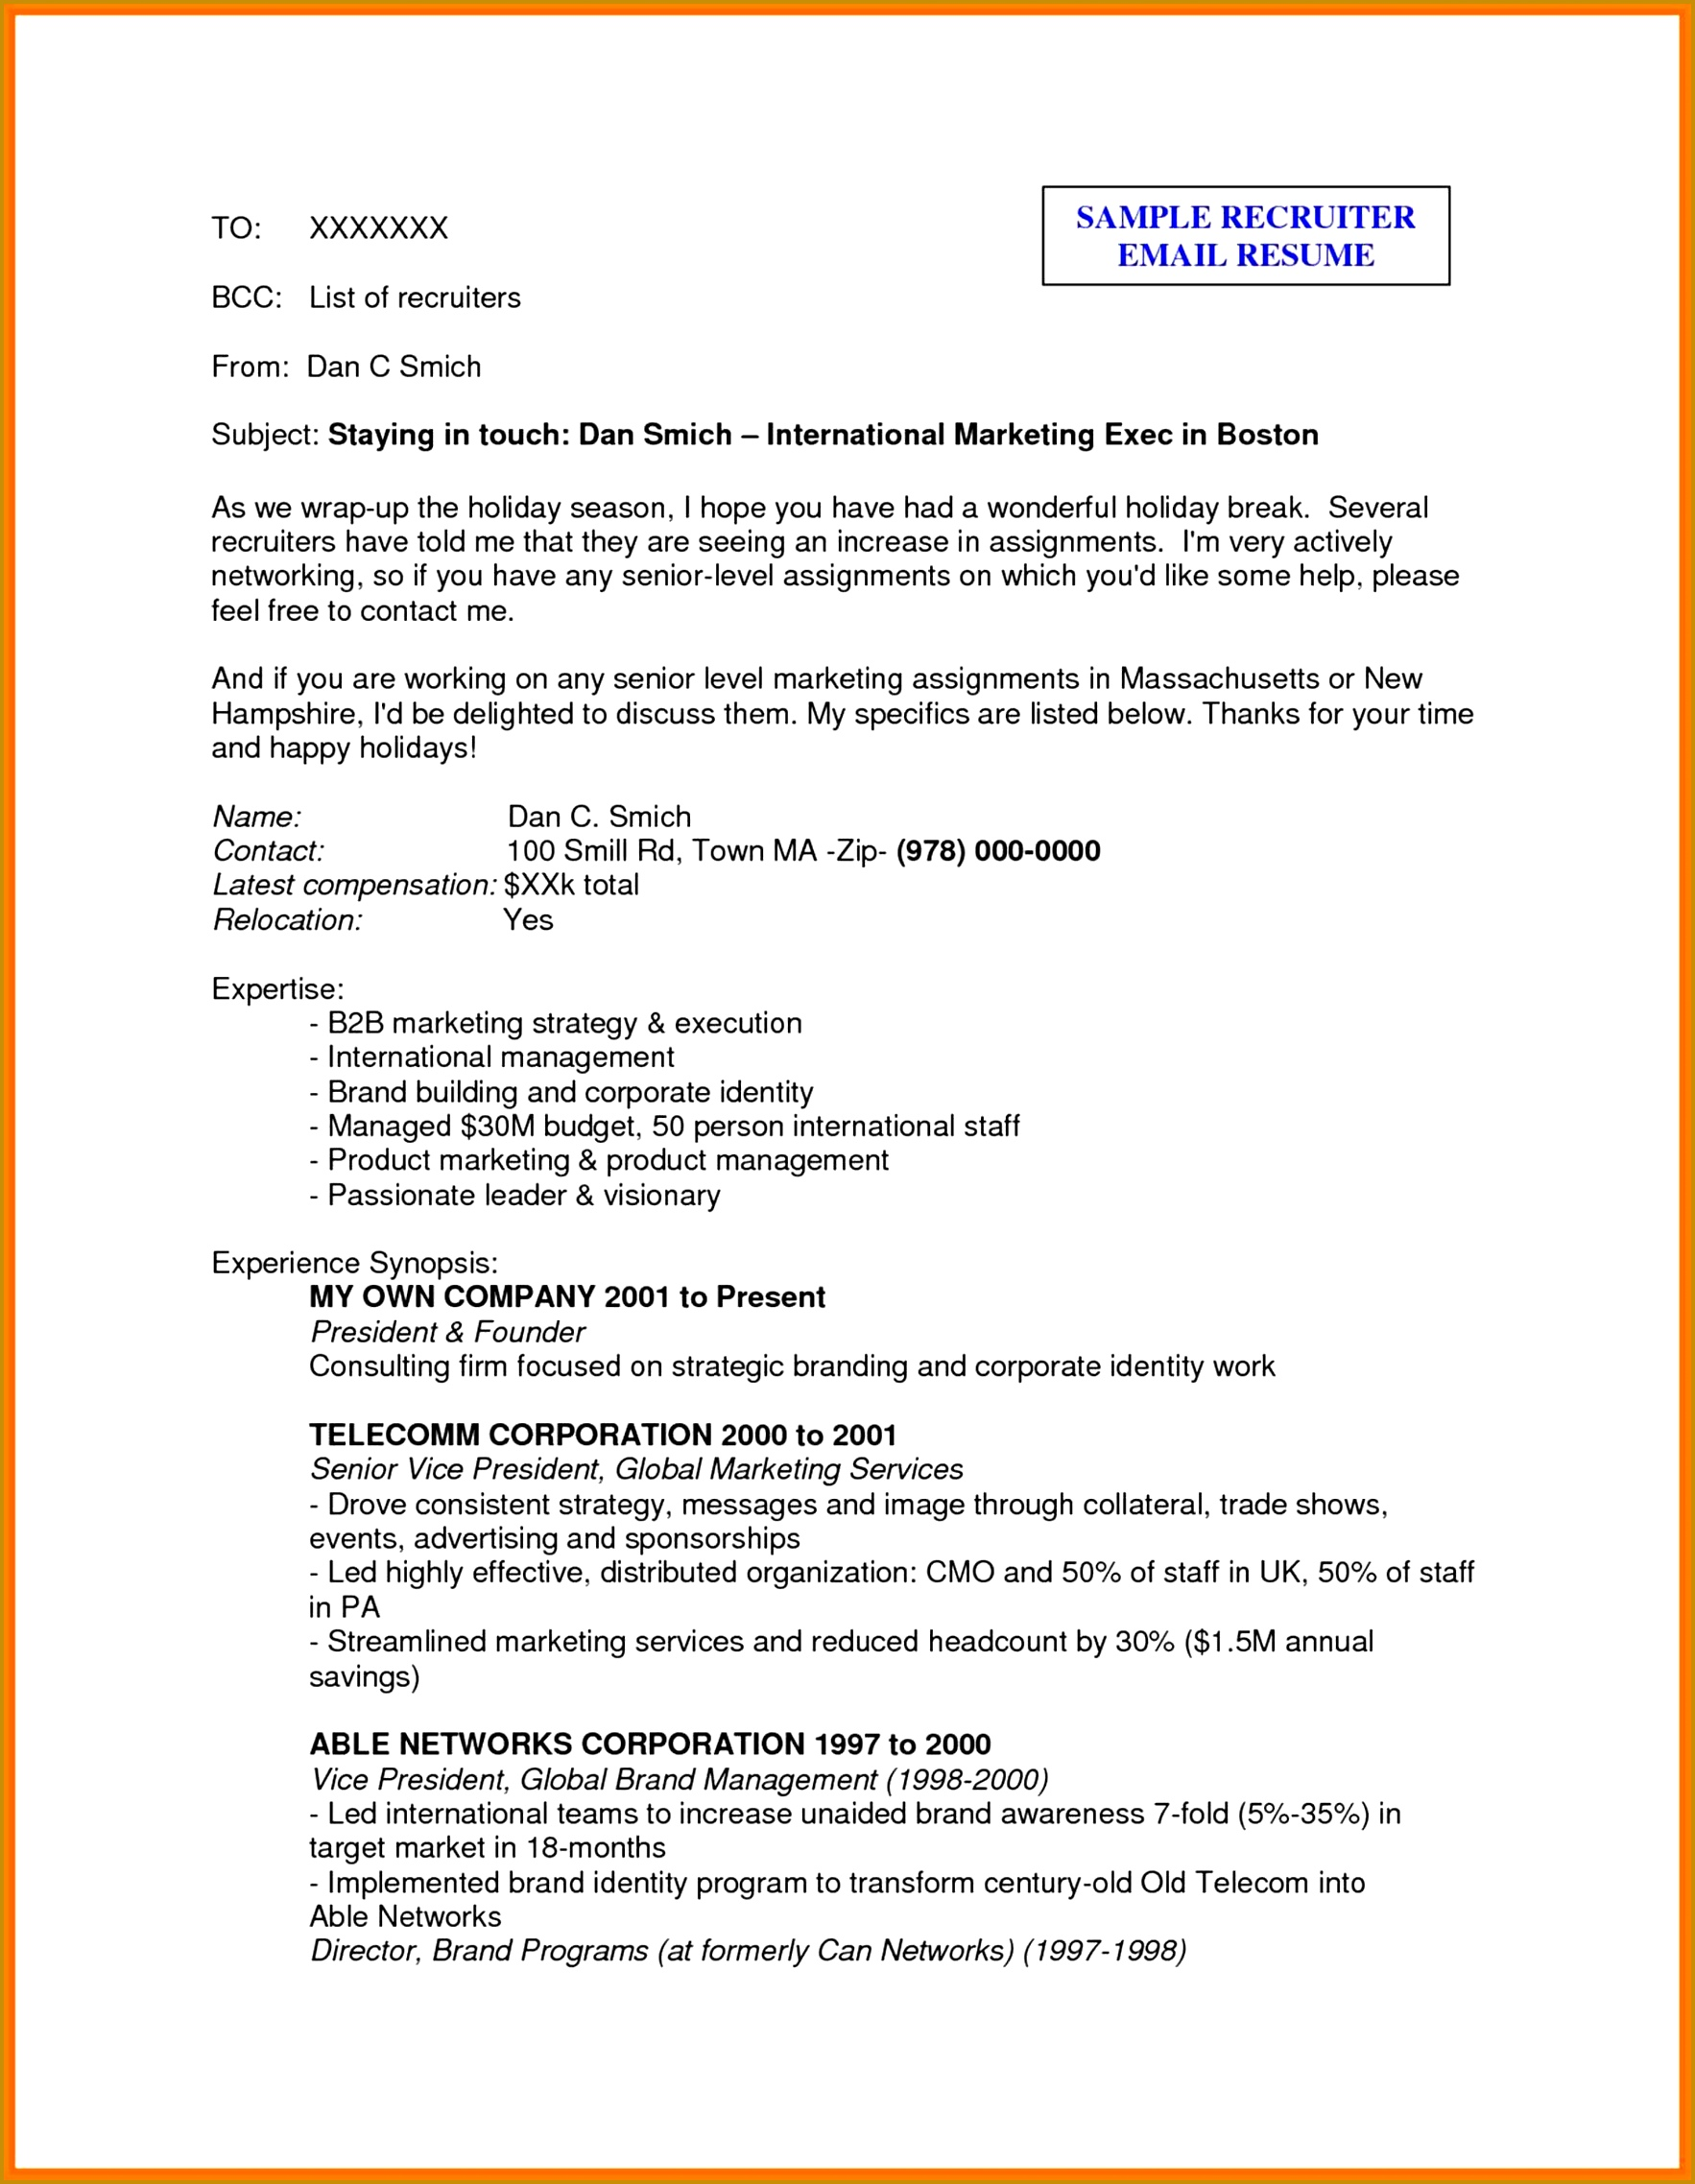 Makeup Consultant Cover Letter - Resume Examples | Resume ...